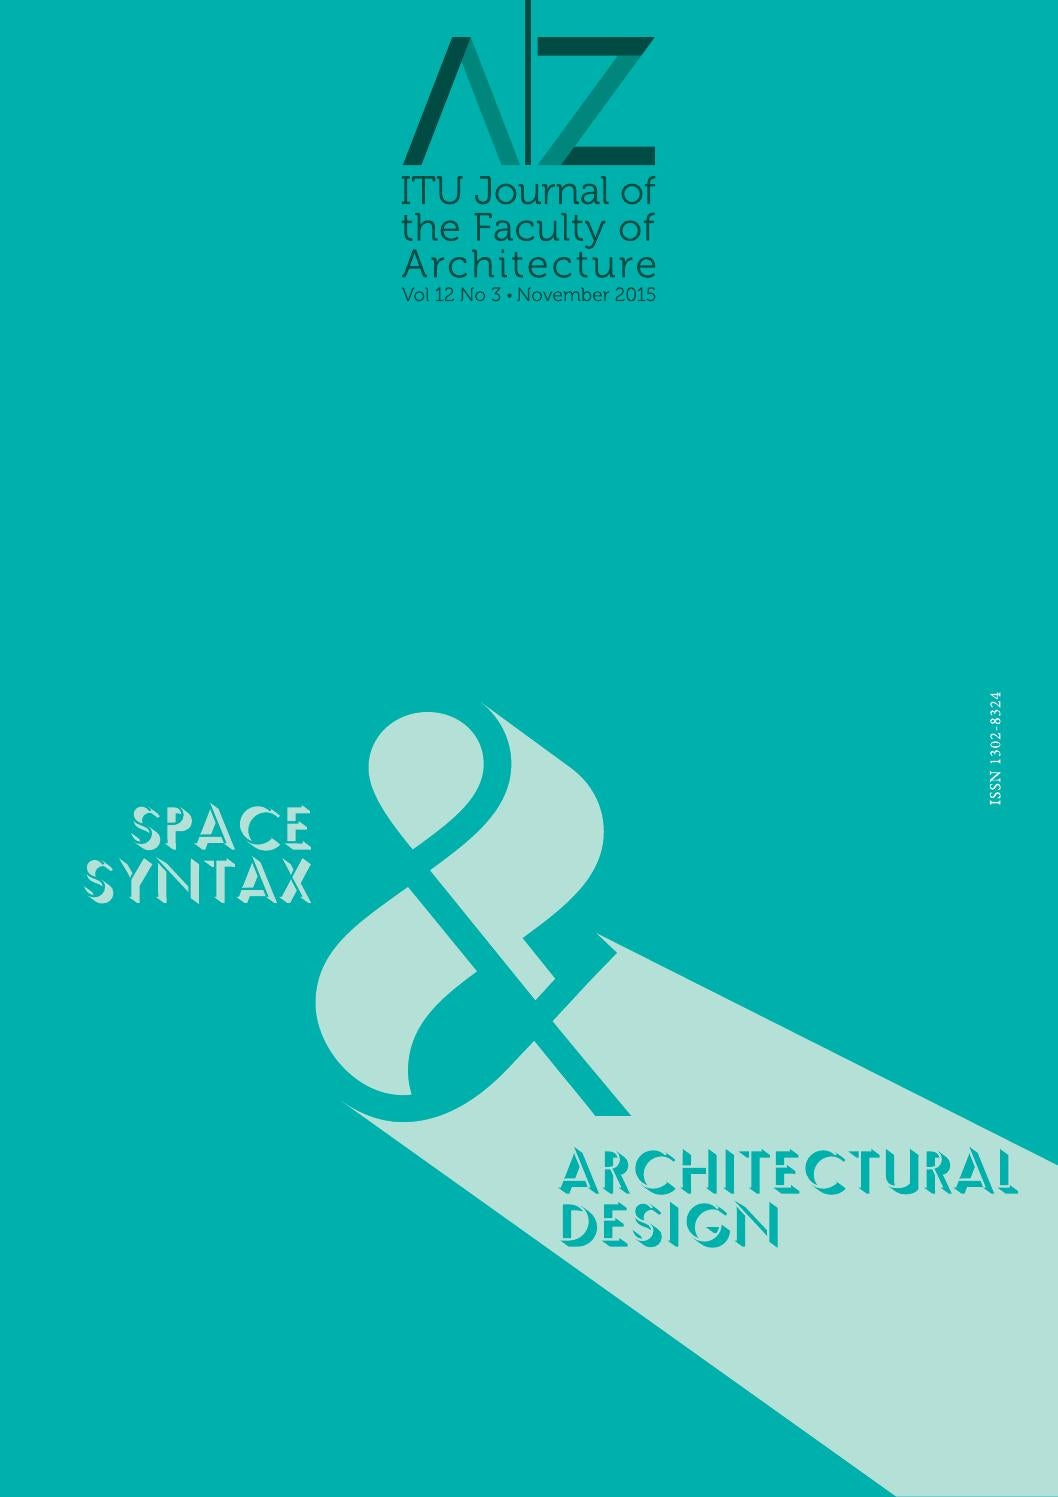 Az itu journal of faculty of architecture 2015 3 by lookus az itu journal of faculty of architecture 2015 3 by lookus scientific issuu fandeluxe Choice Image